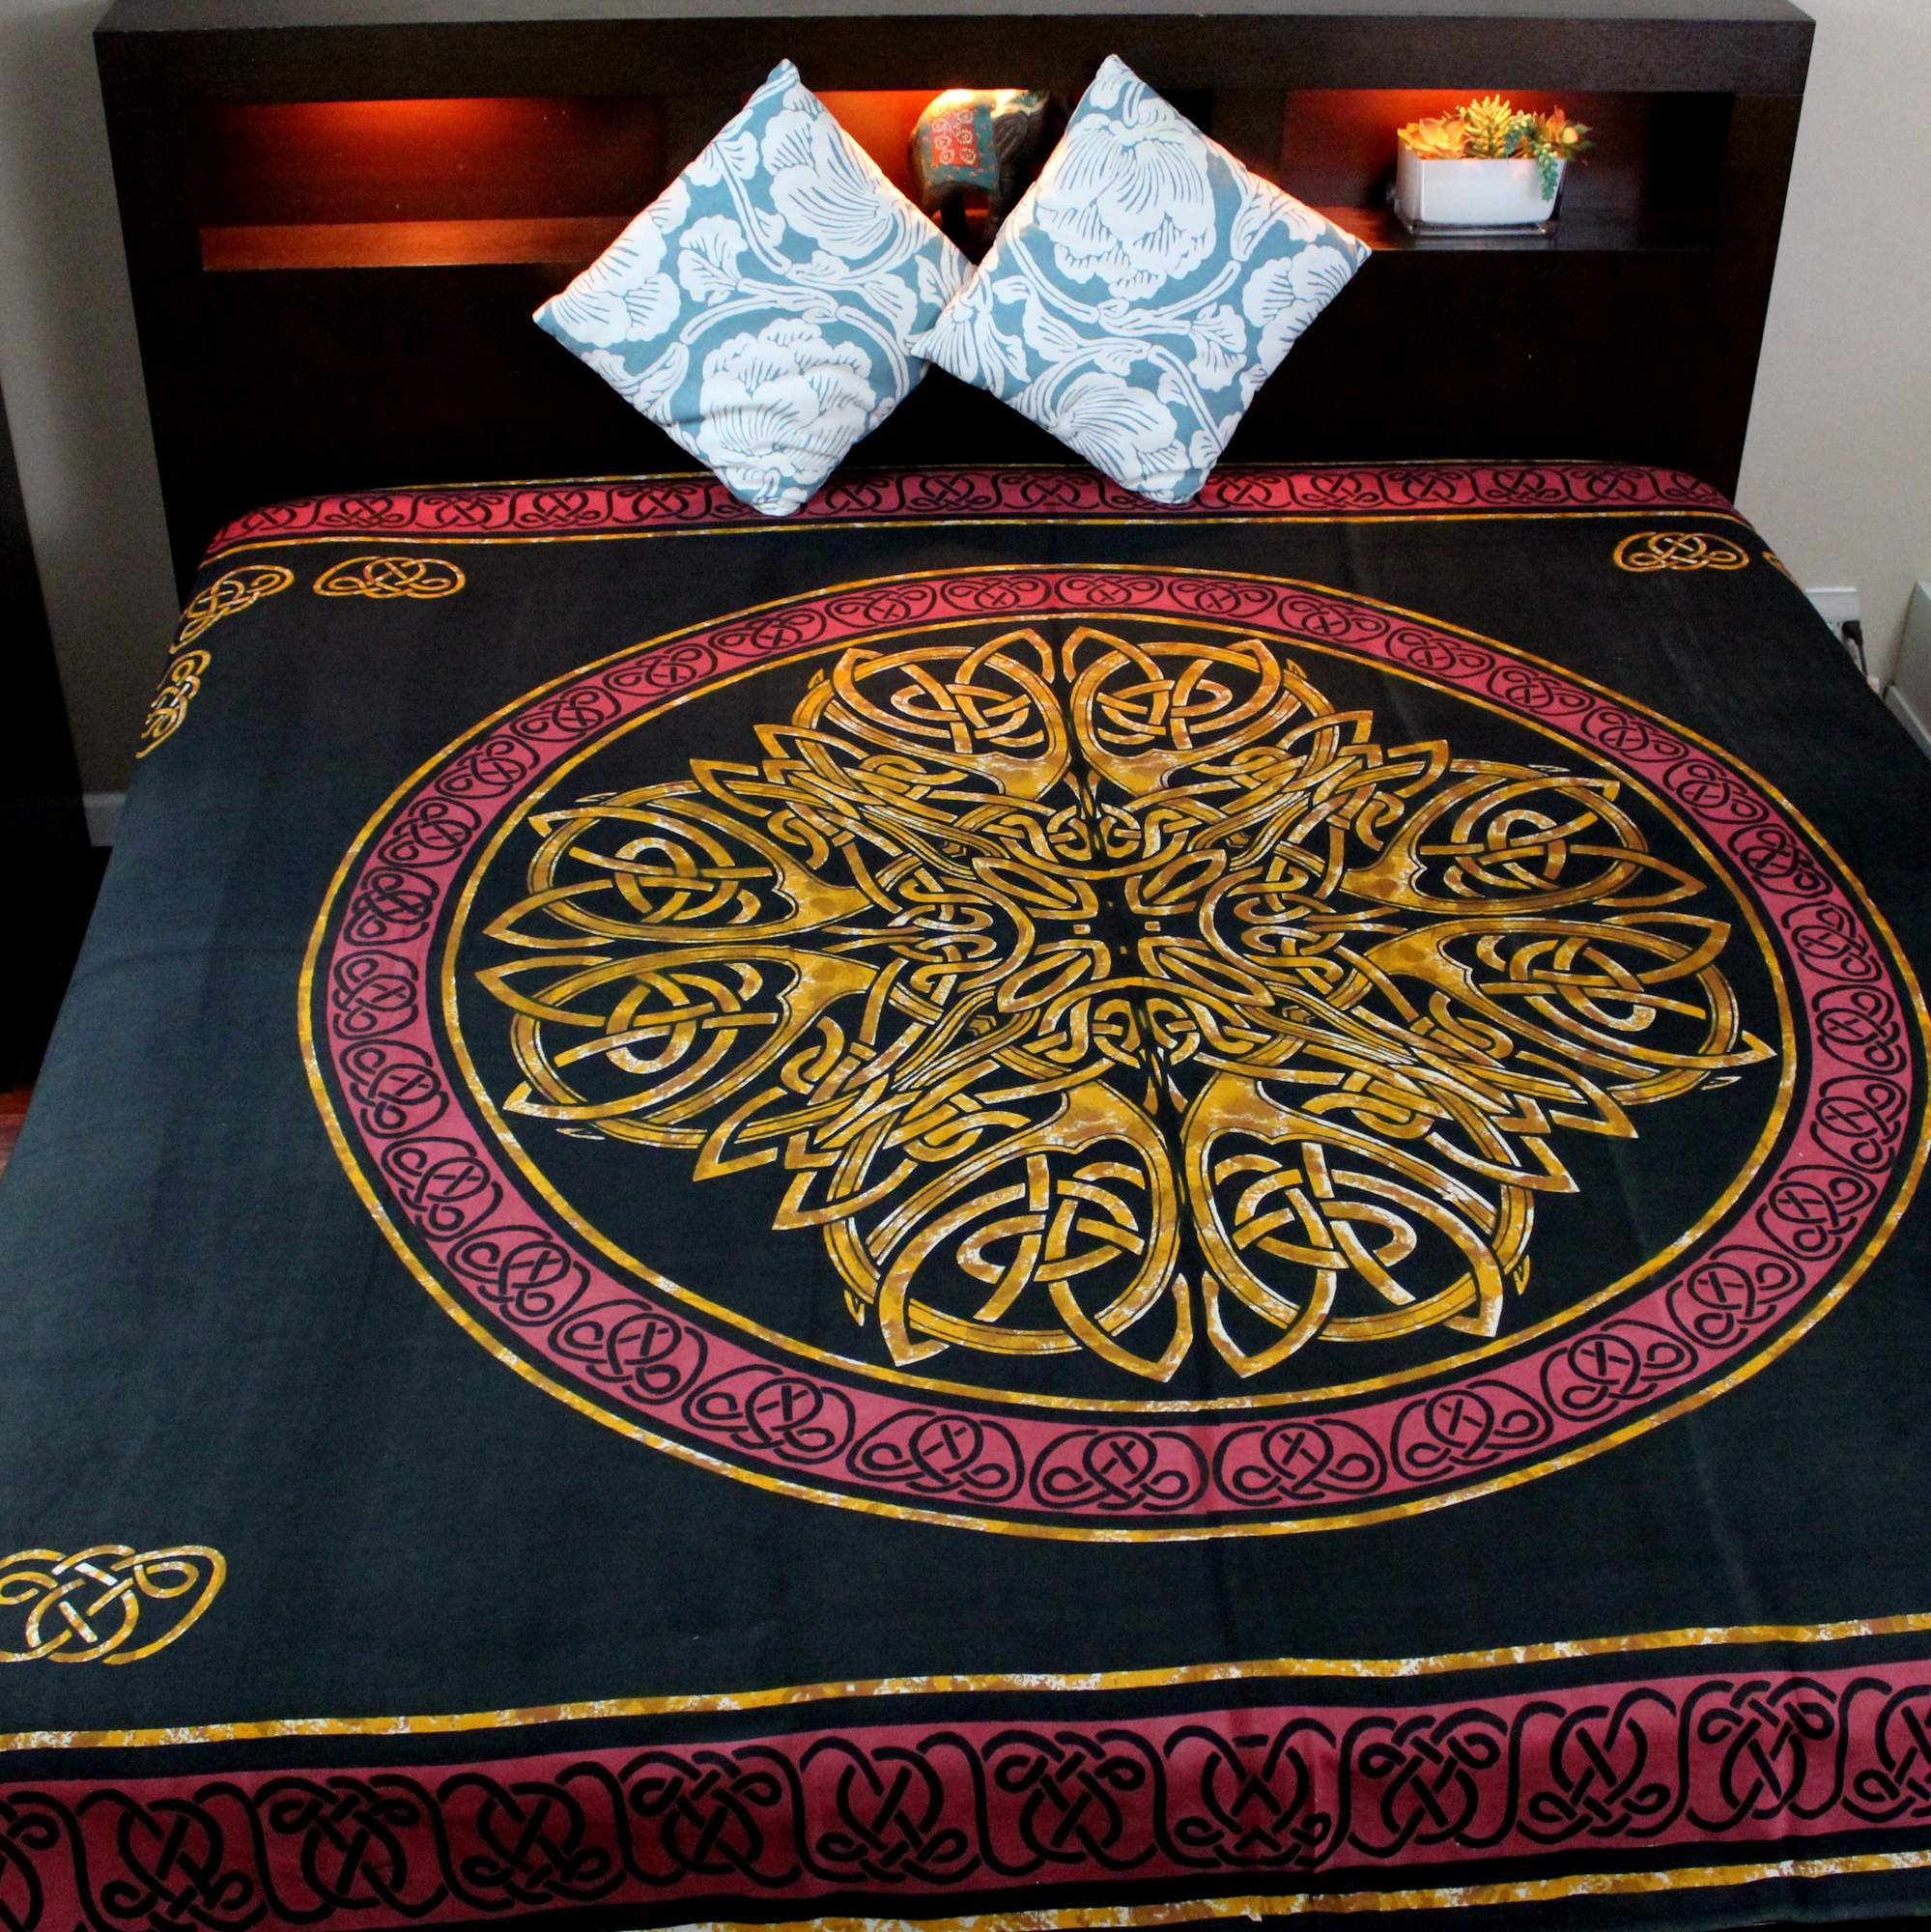 Handmade 100% Cotton Celtic Circular Knot Print Tapestry Bedspread Tablecloth Throw King 110x110 by India Arts (Image #2)